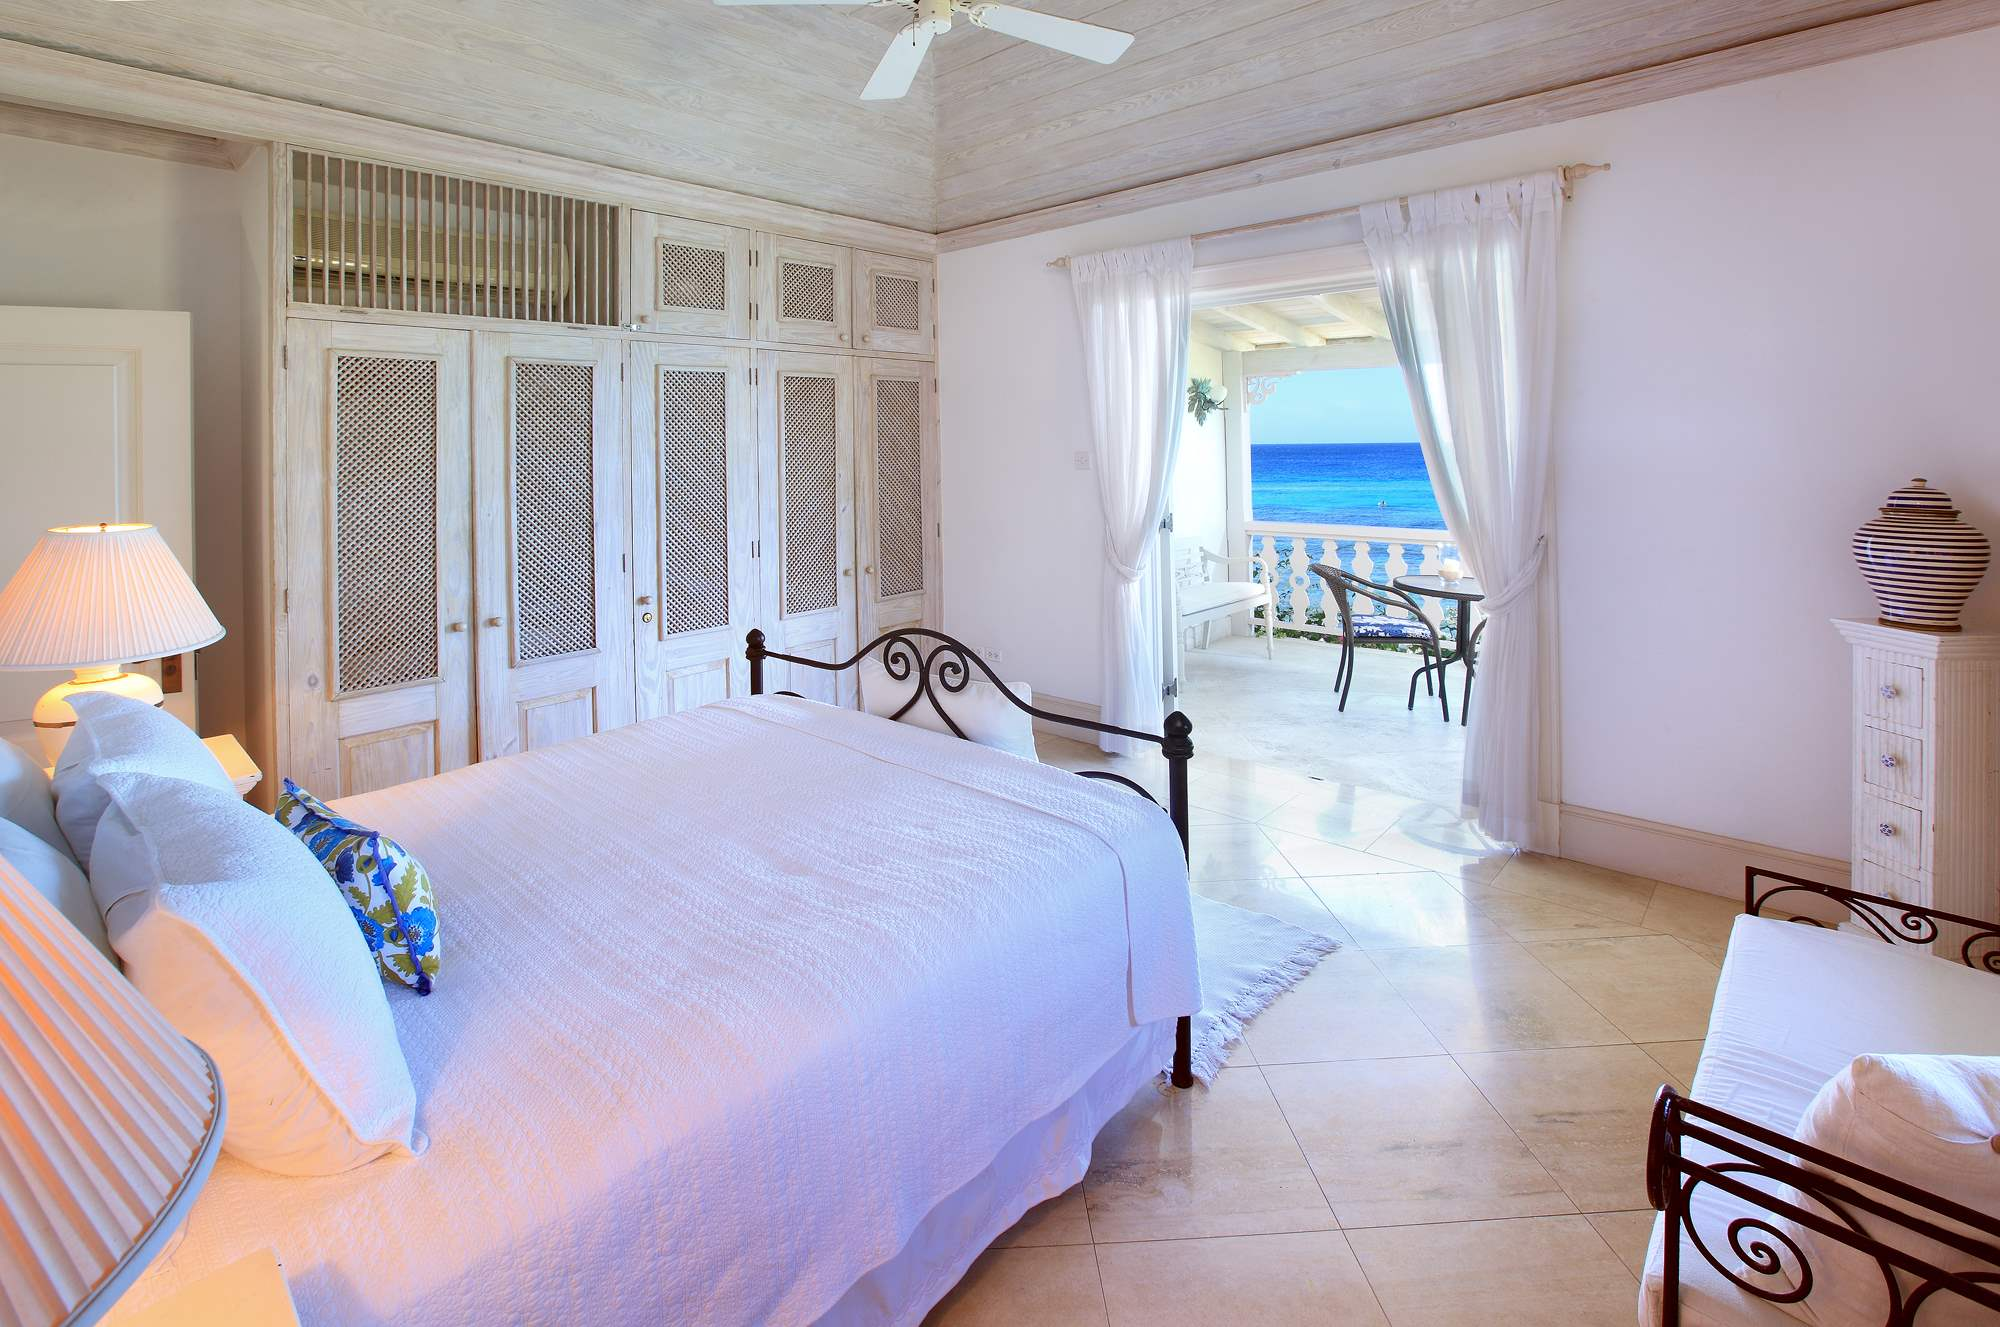 Caprice, 4 bedroom villa in St. James & West Coast, Barbados Photo #9